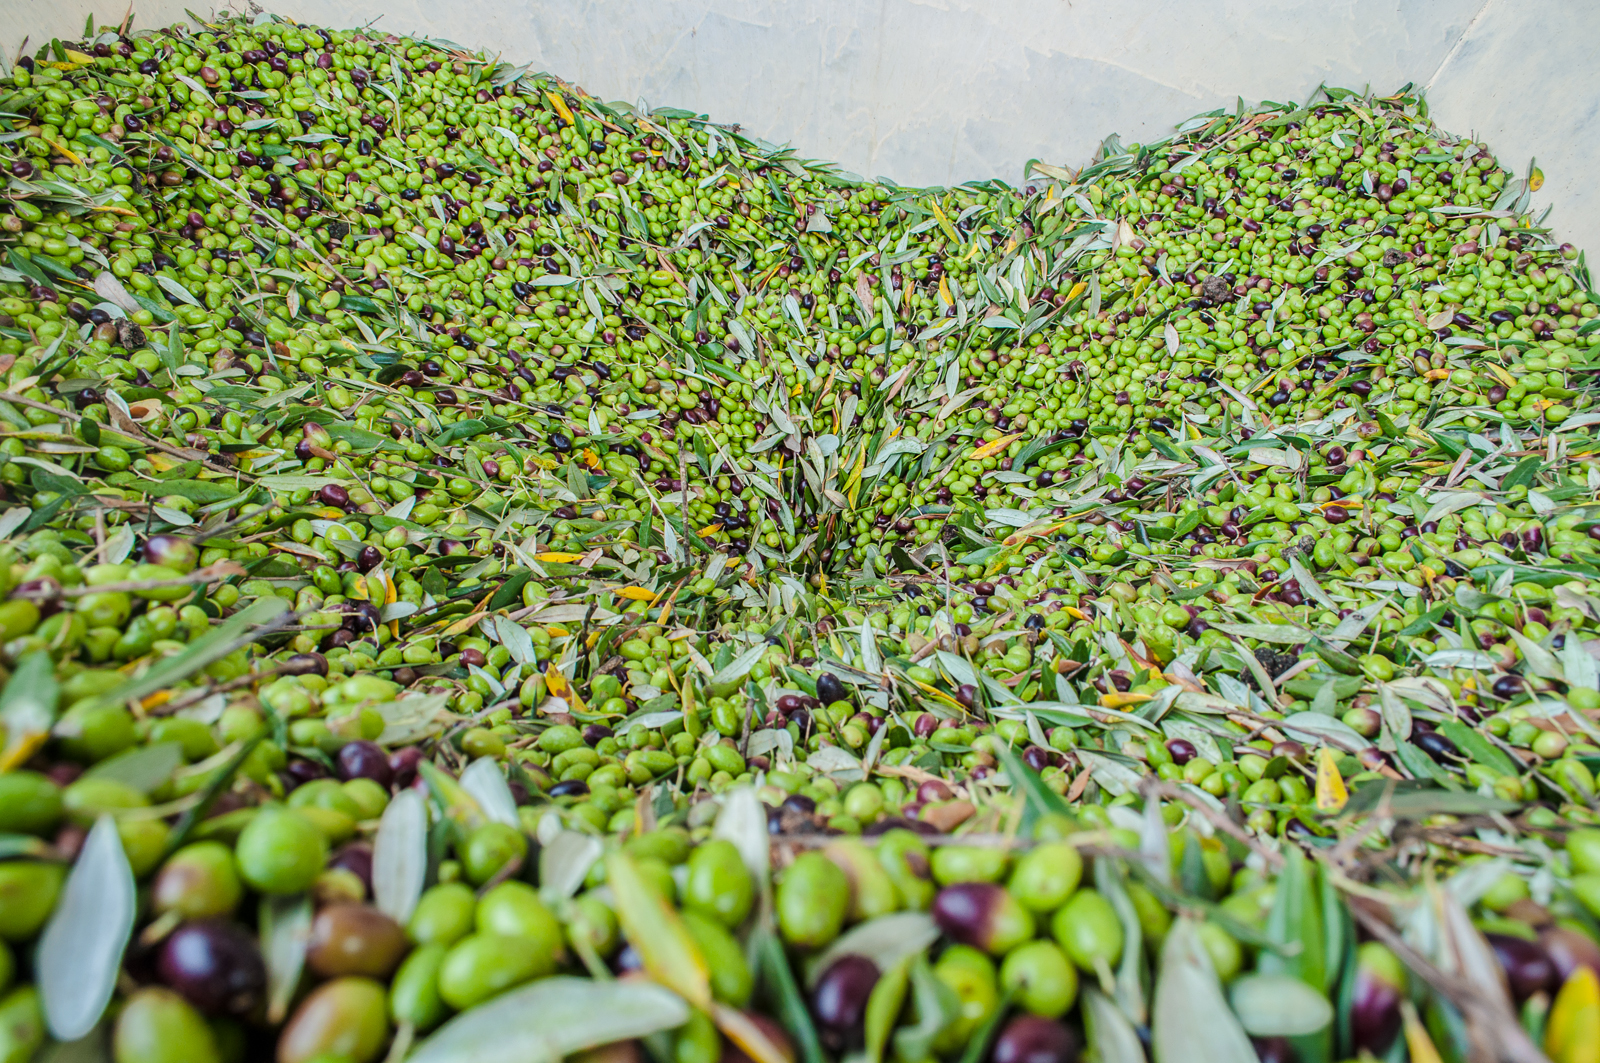 The just-harvested olives